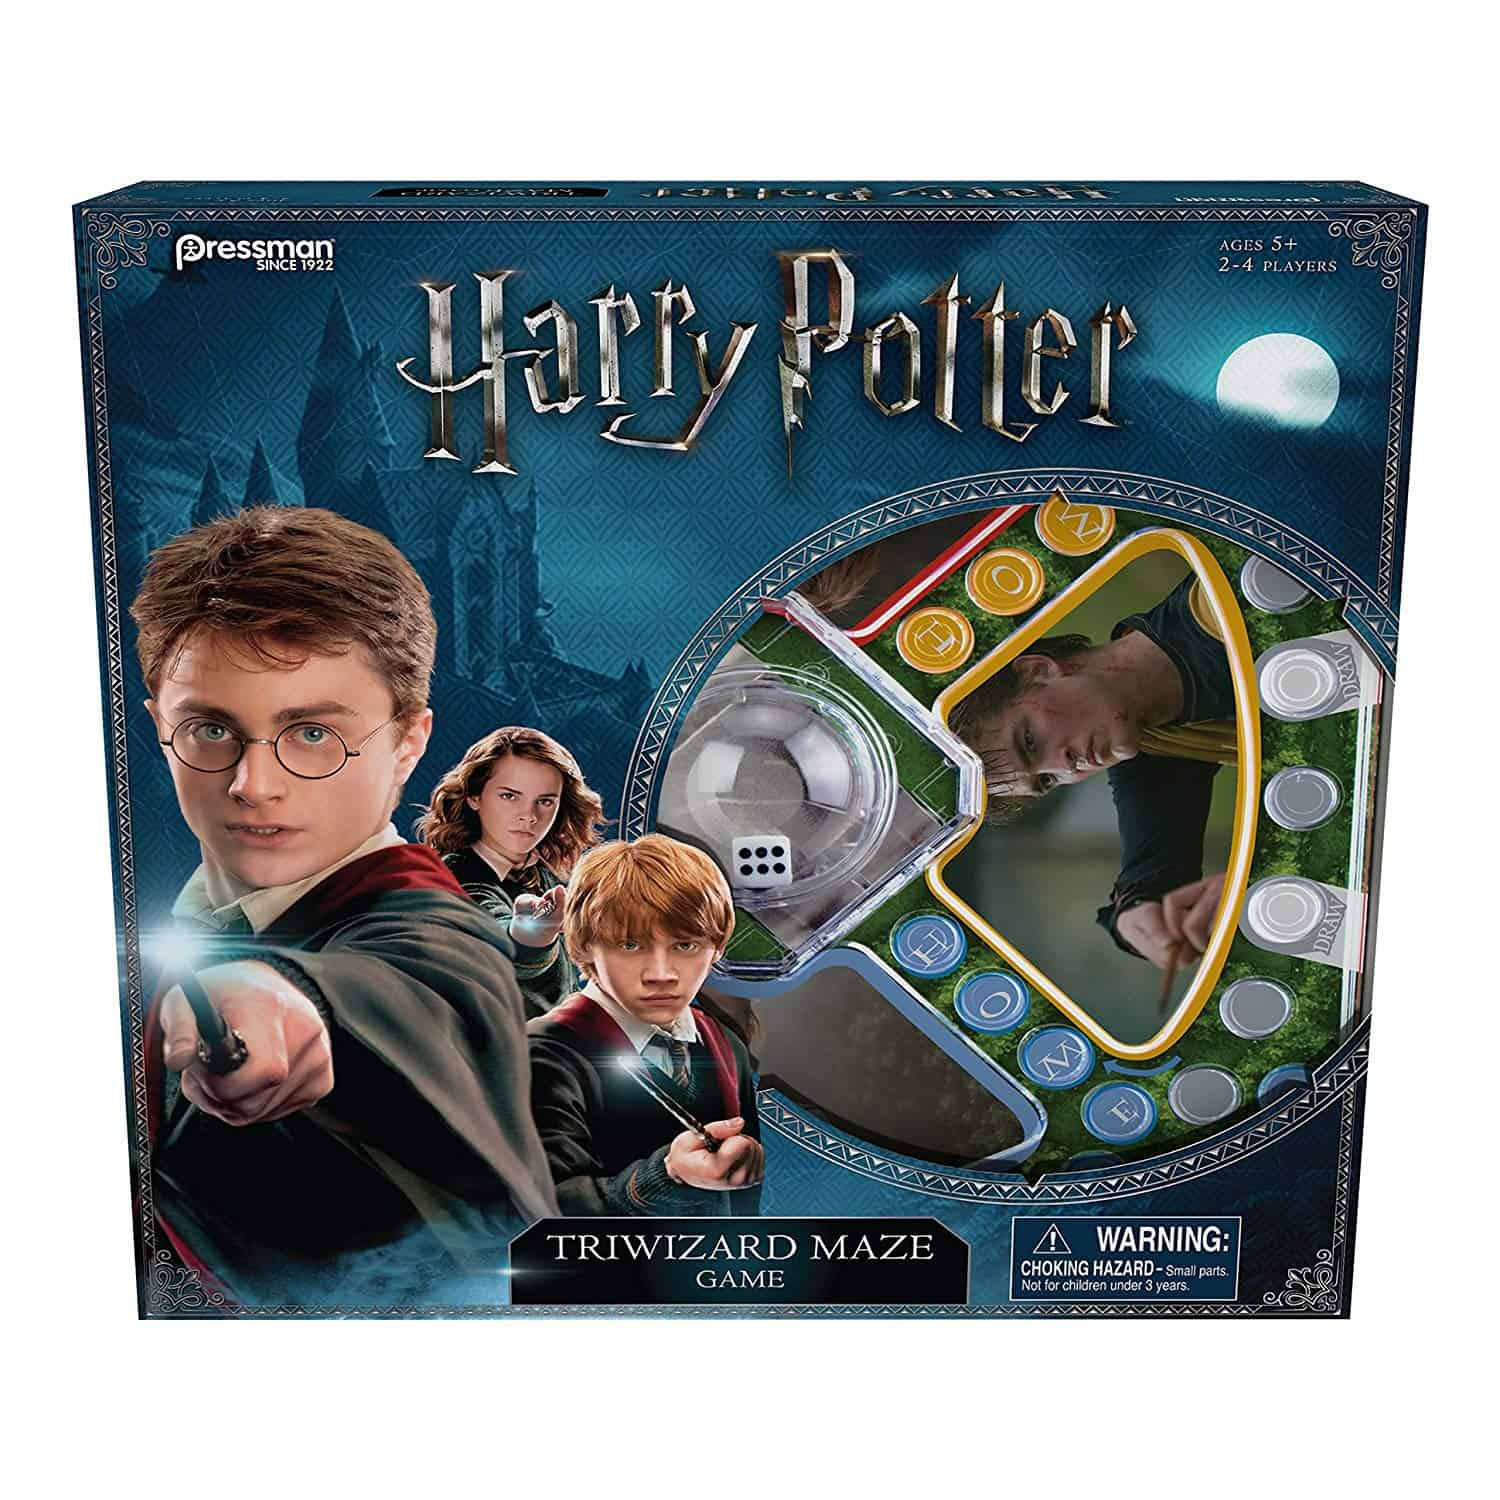 Harry Potter Triwizard Maze game 2019 Easter Gift Guide